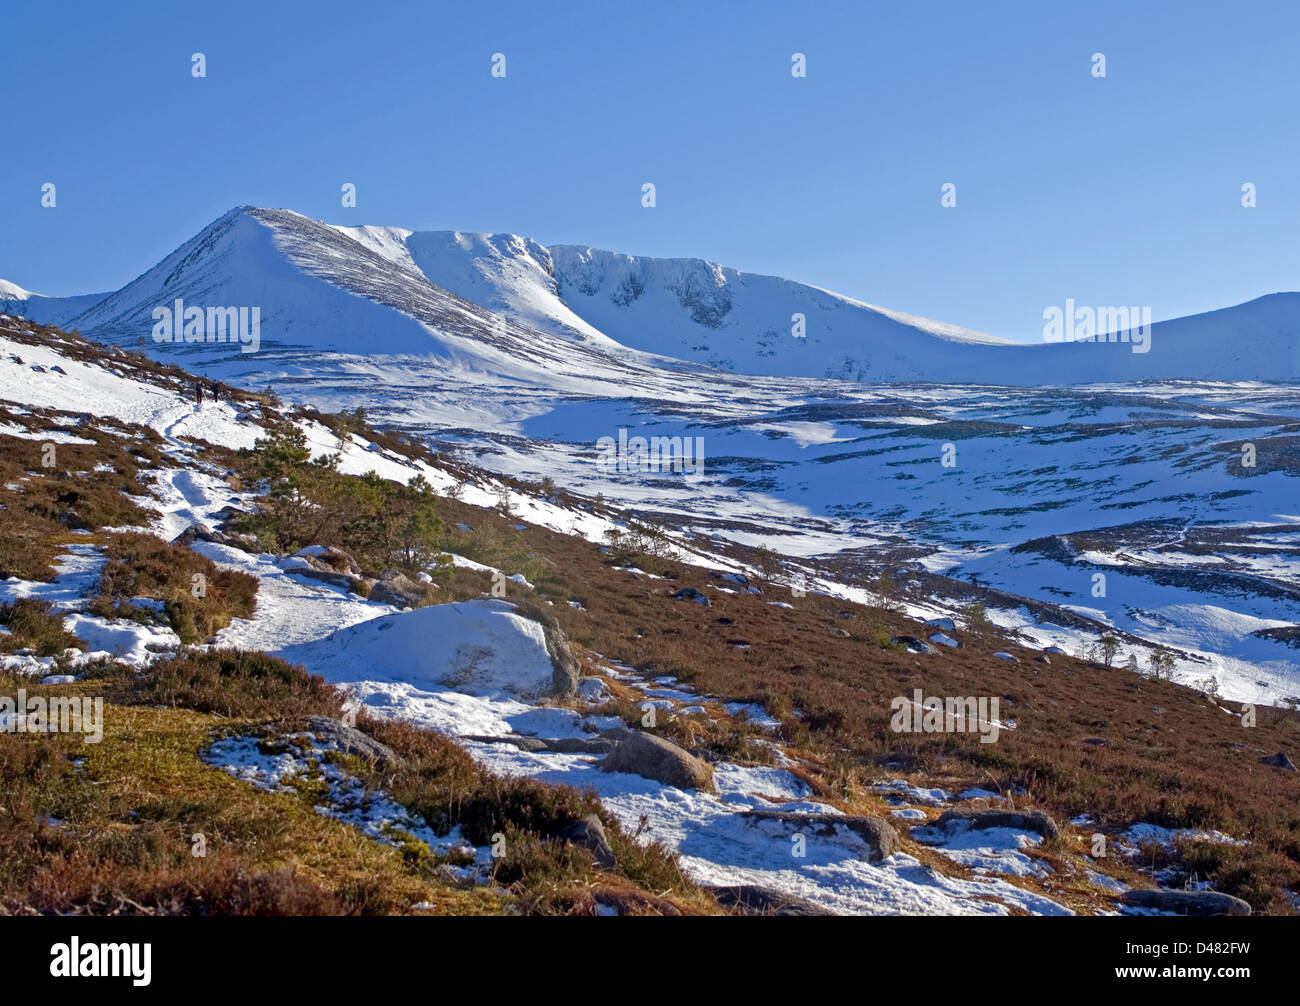 Cairn Lochan and Coire an Lochain seen from the lower slopes of the Fiacaill ridge, Cairngorms, Scottish Hghlands, - Stock Image